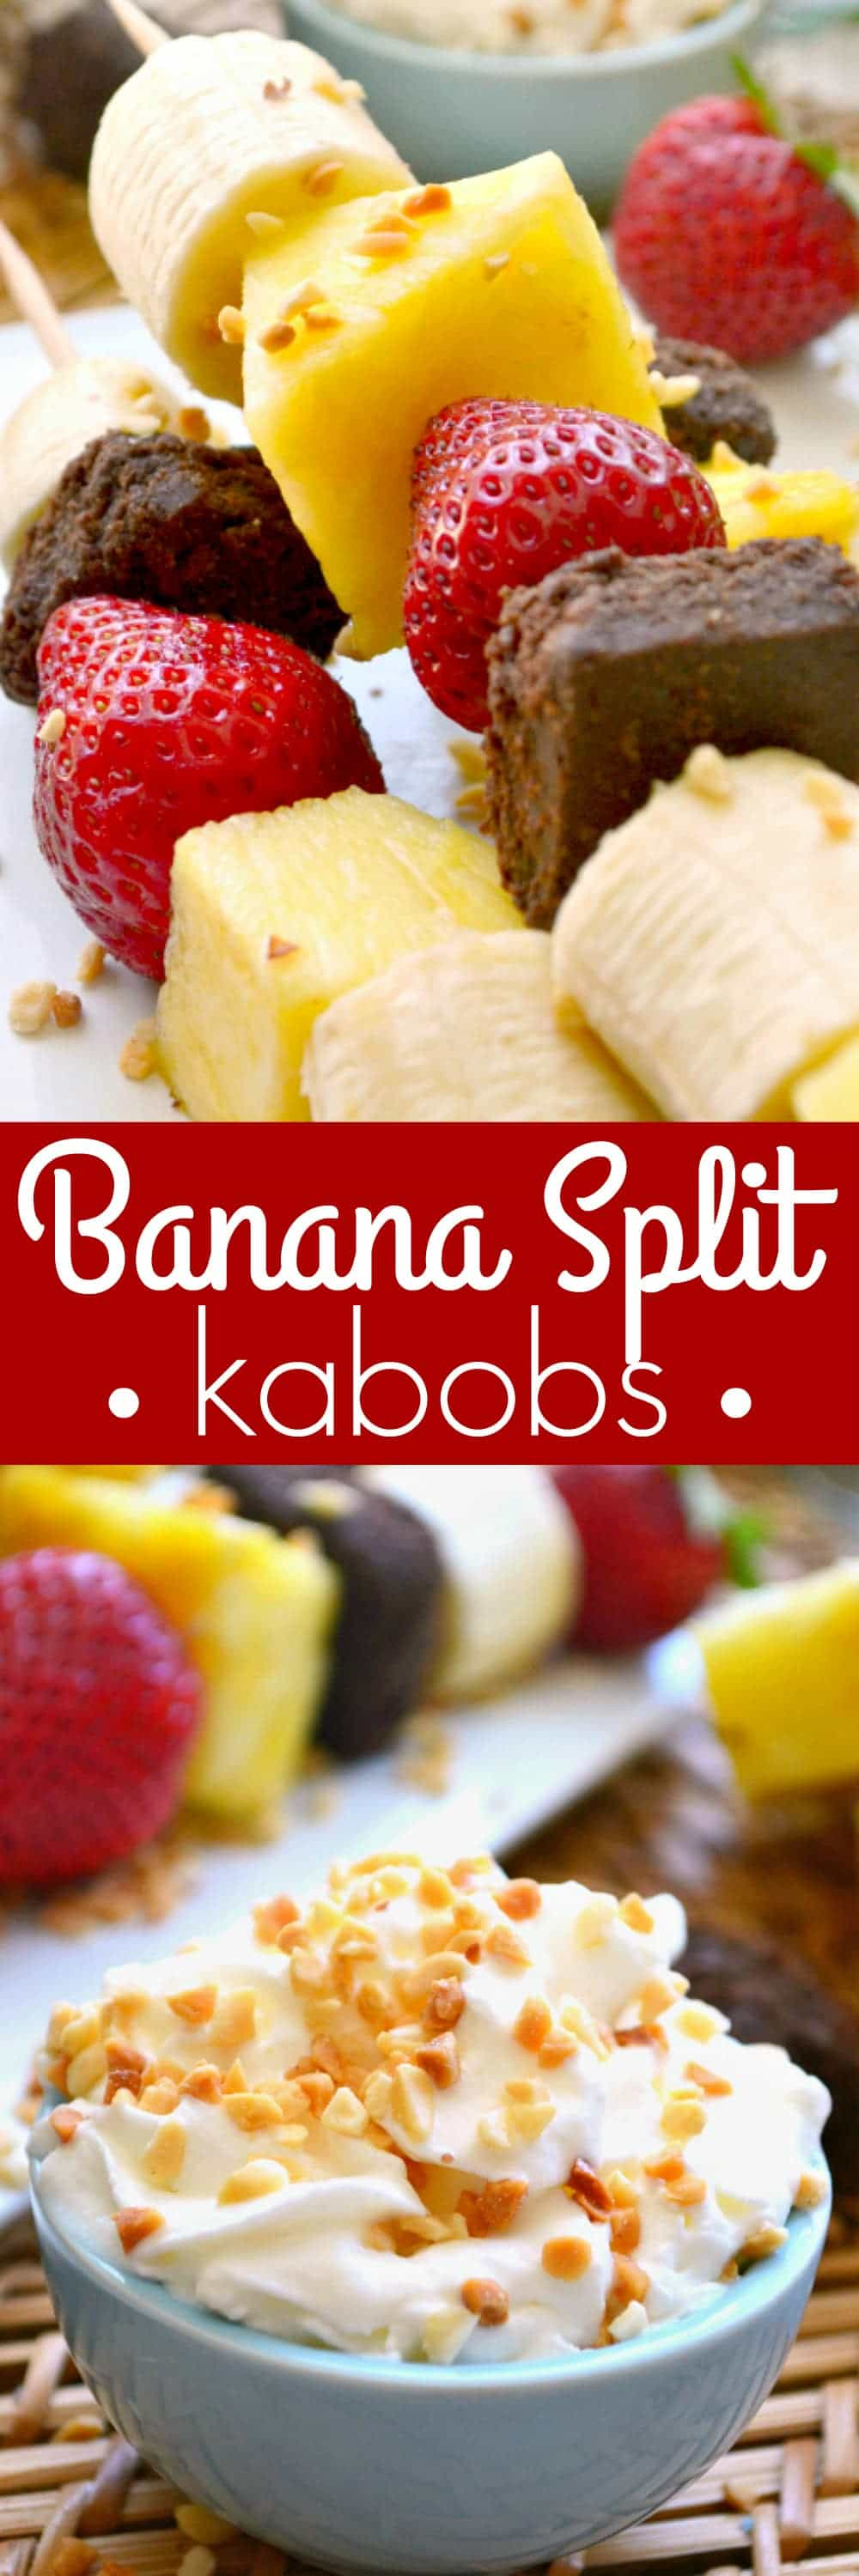 Banana Split Kabobs - what a fun summer dessert idea!!